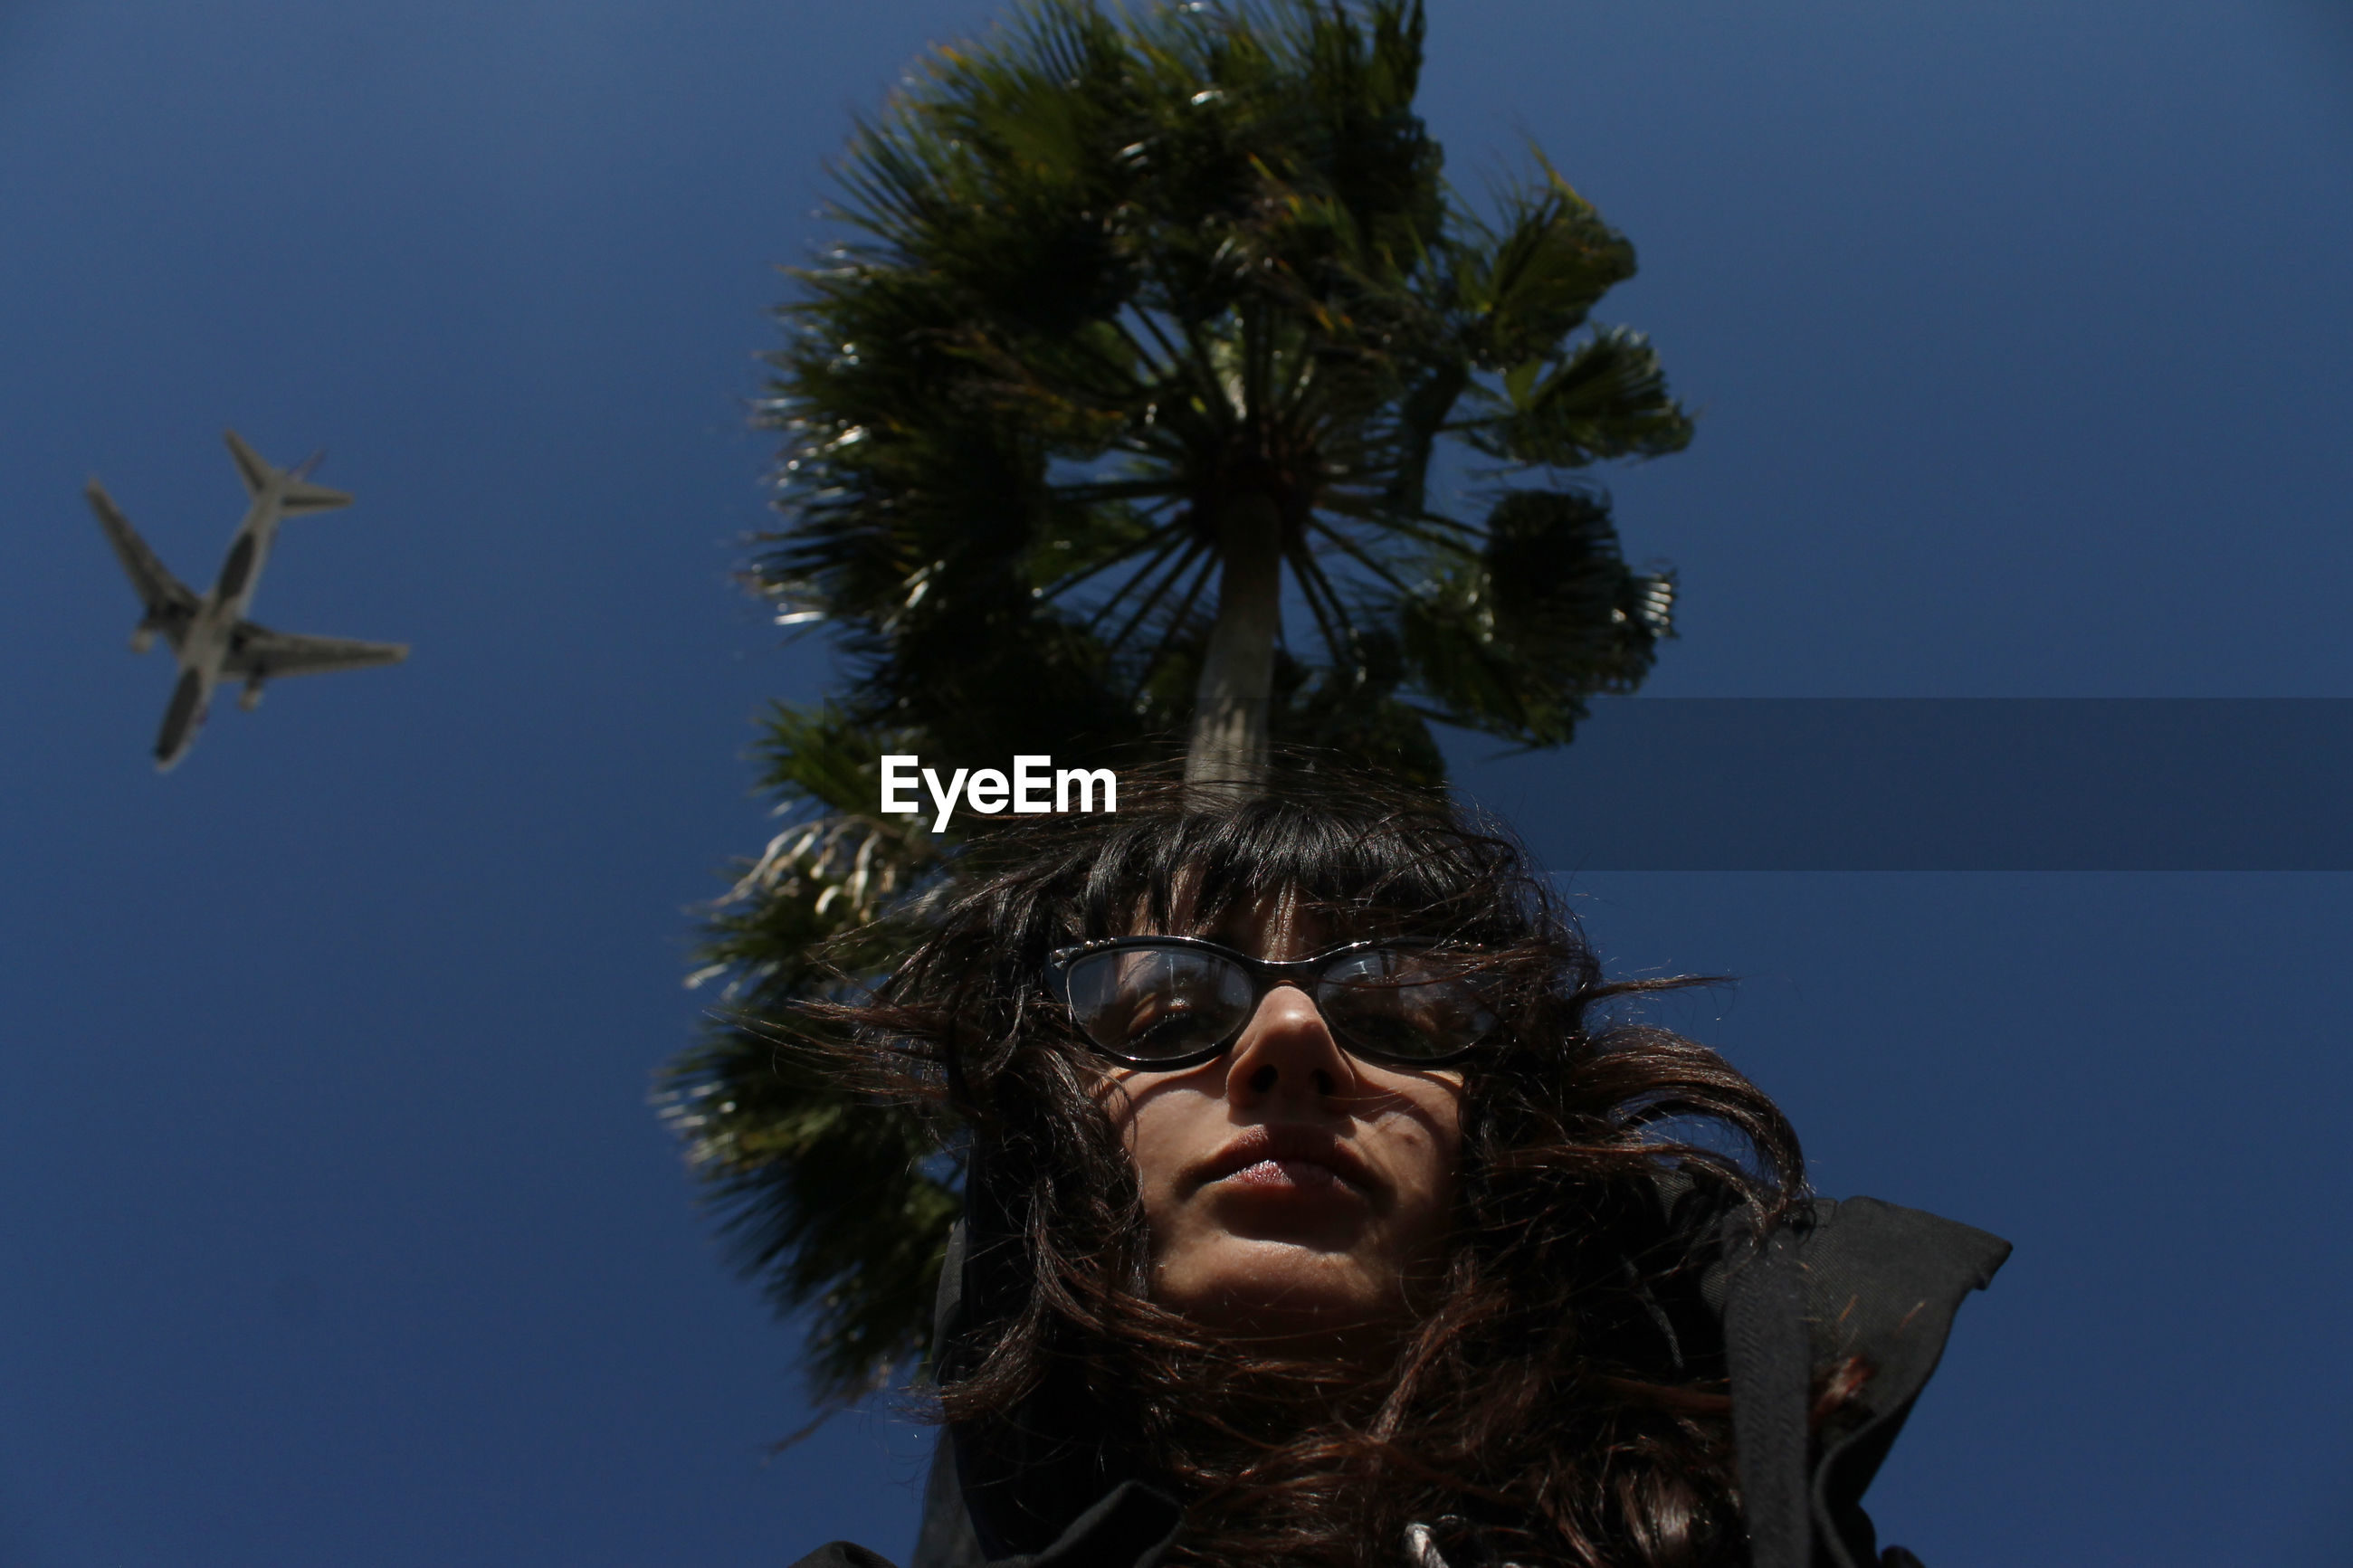 Optical illusion of young woman carrying tree against clear blue sky